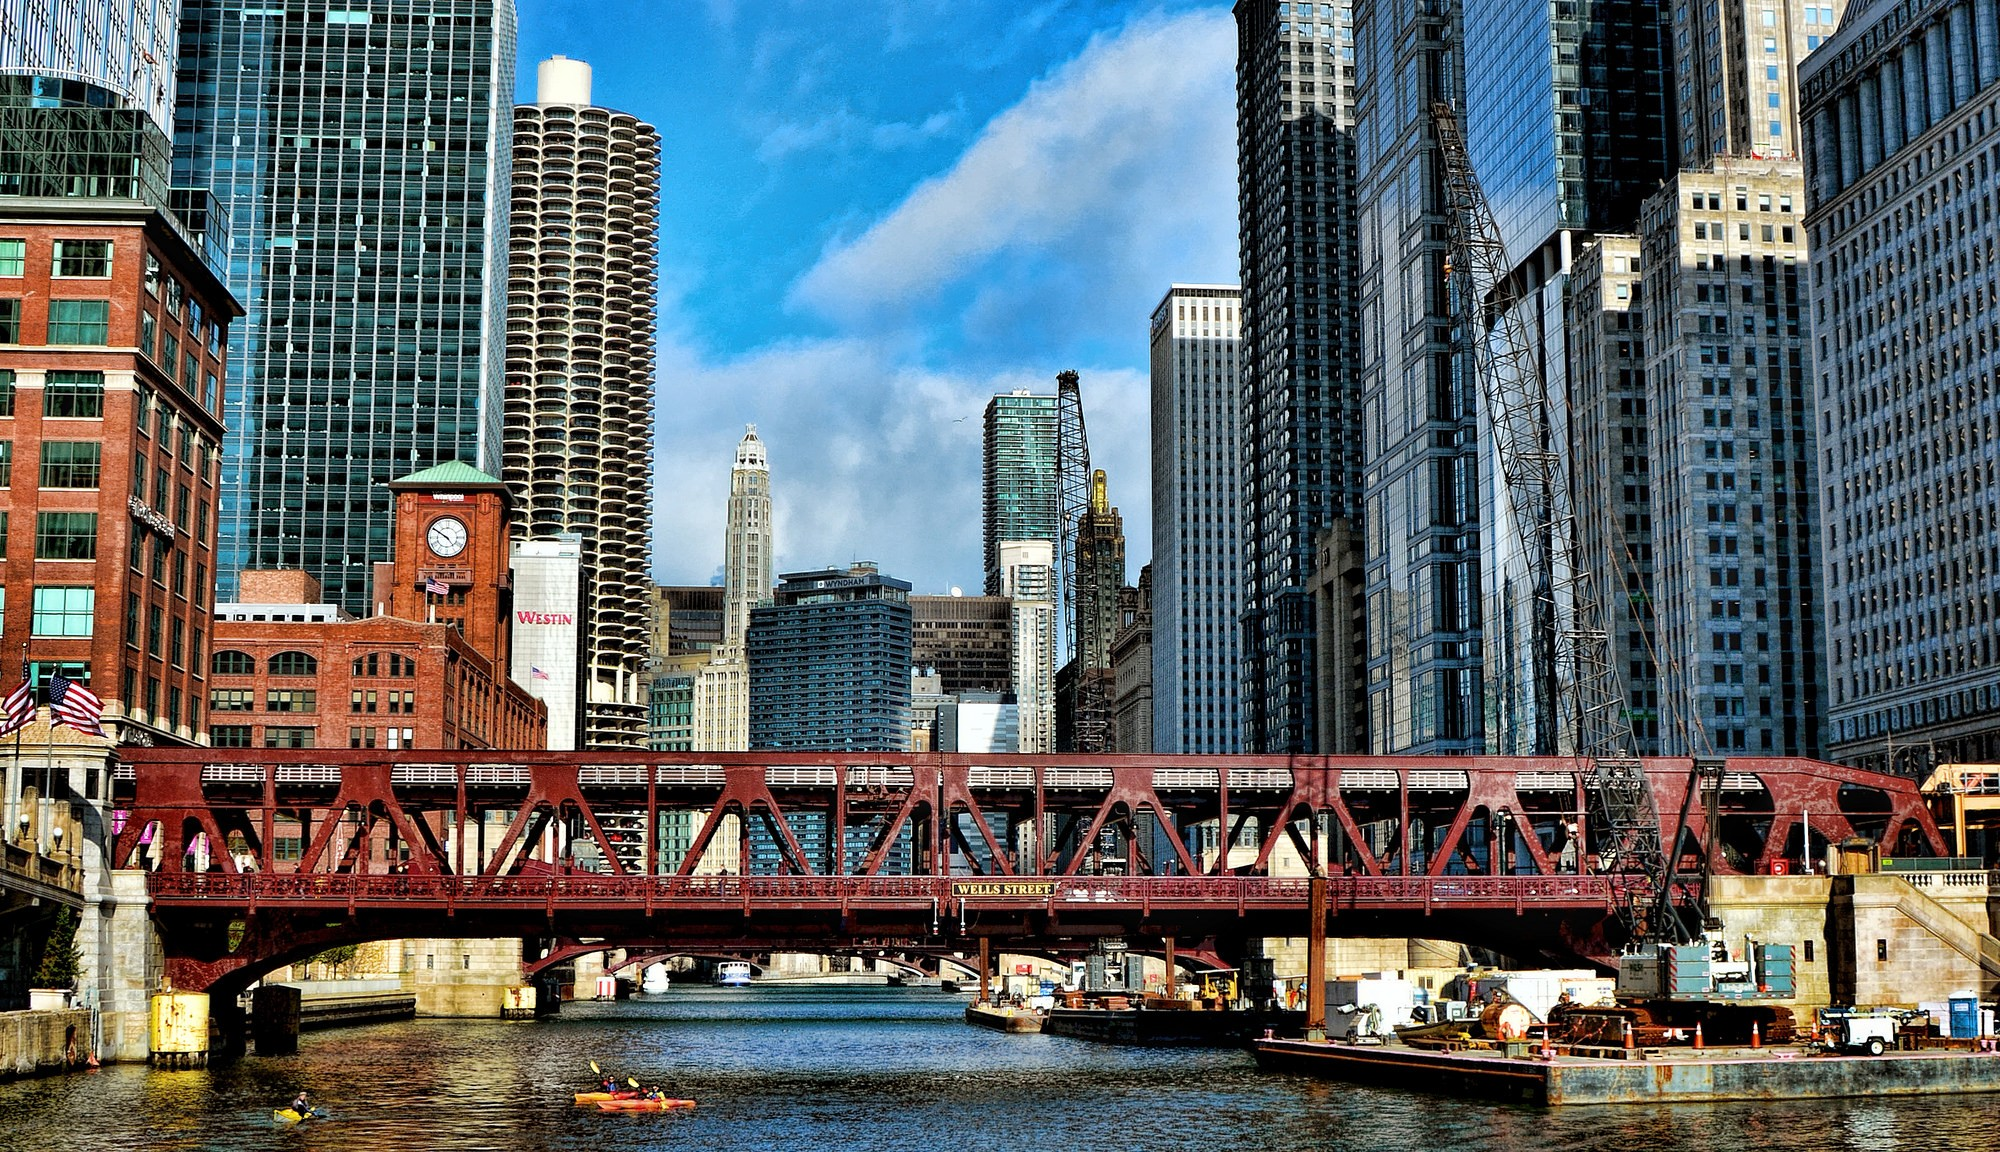 Image of the Chicago skyline, looking down the river with a red bridge over it, skyscrapers on either side. It is a sunny day and kayakers are paddling in the water.